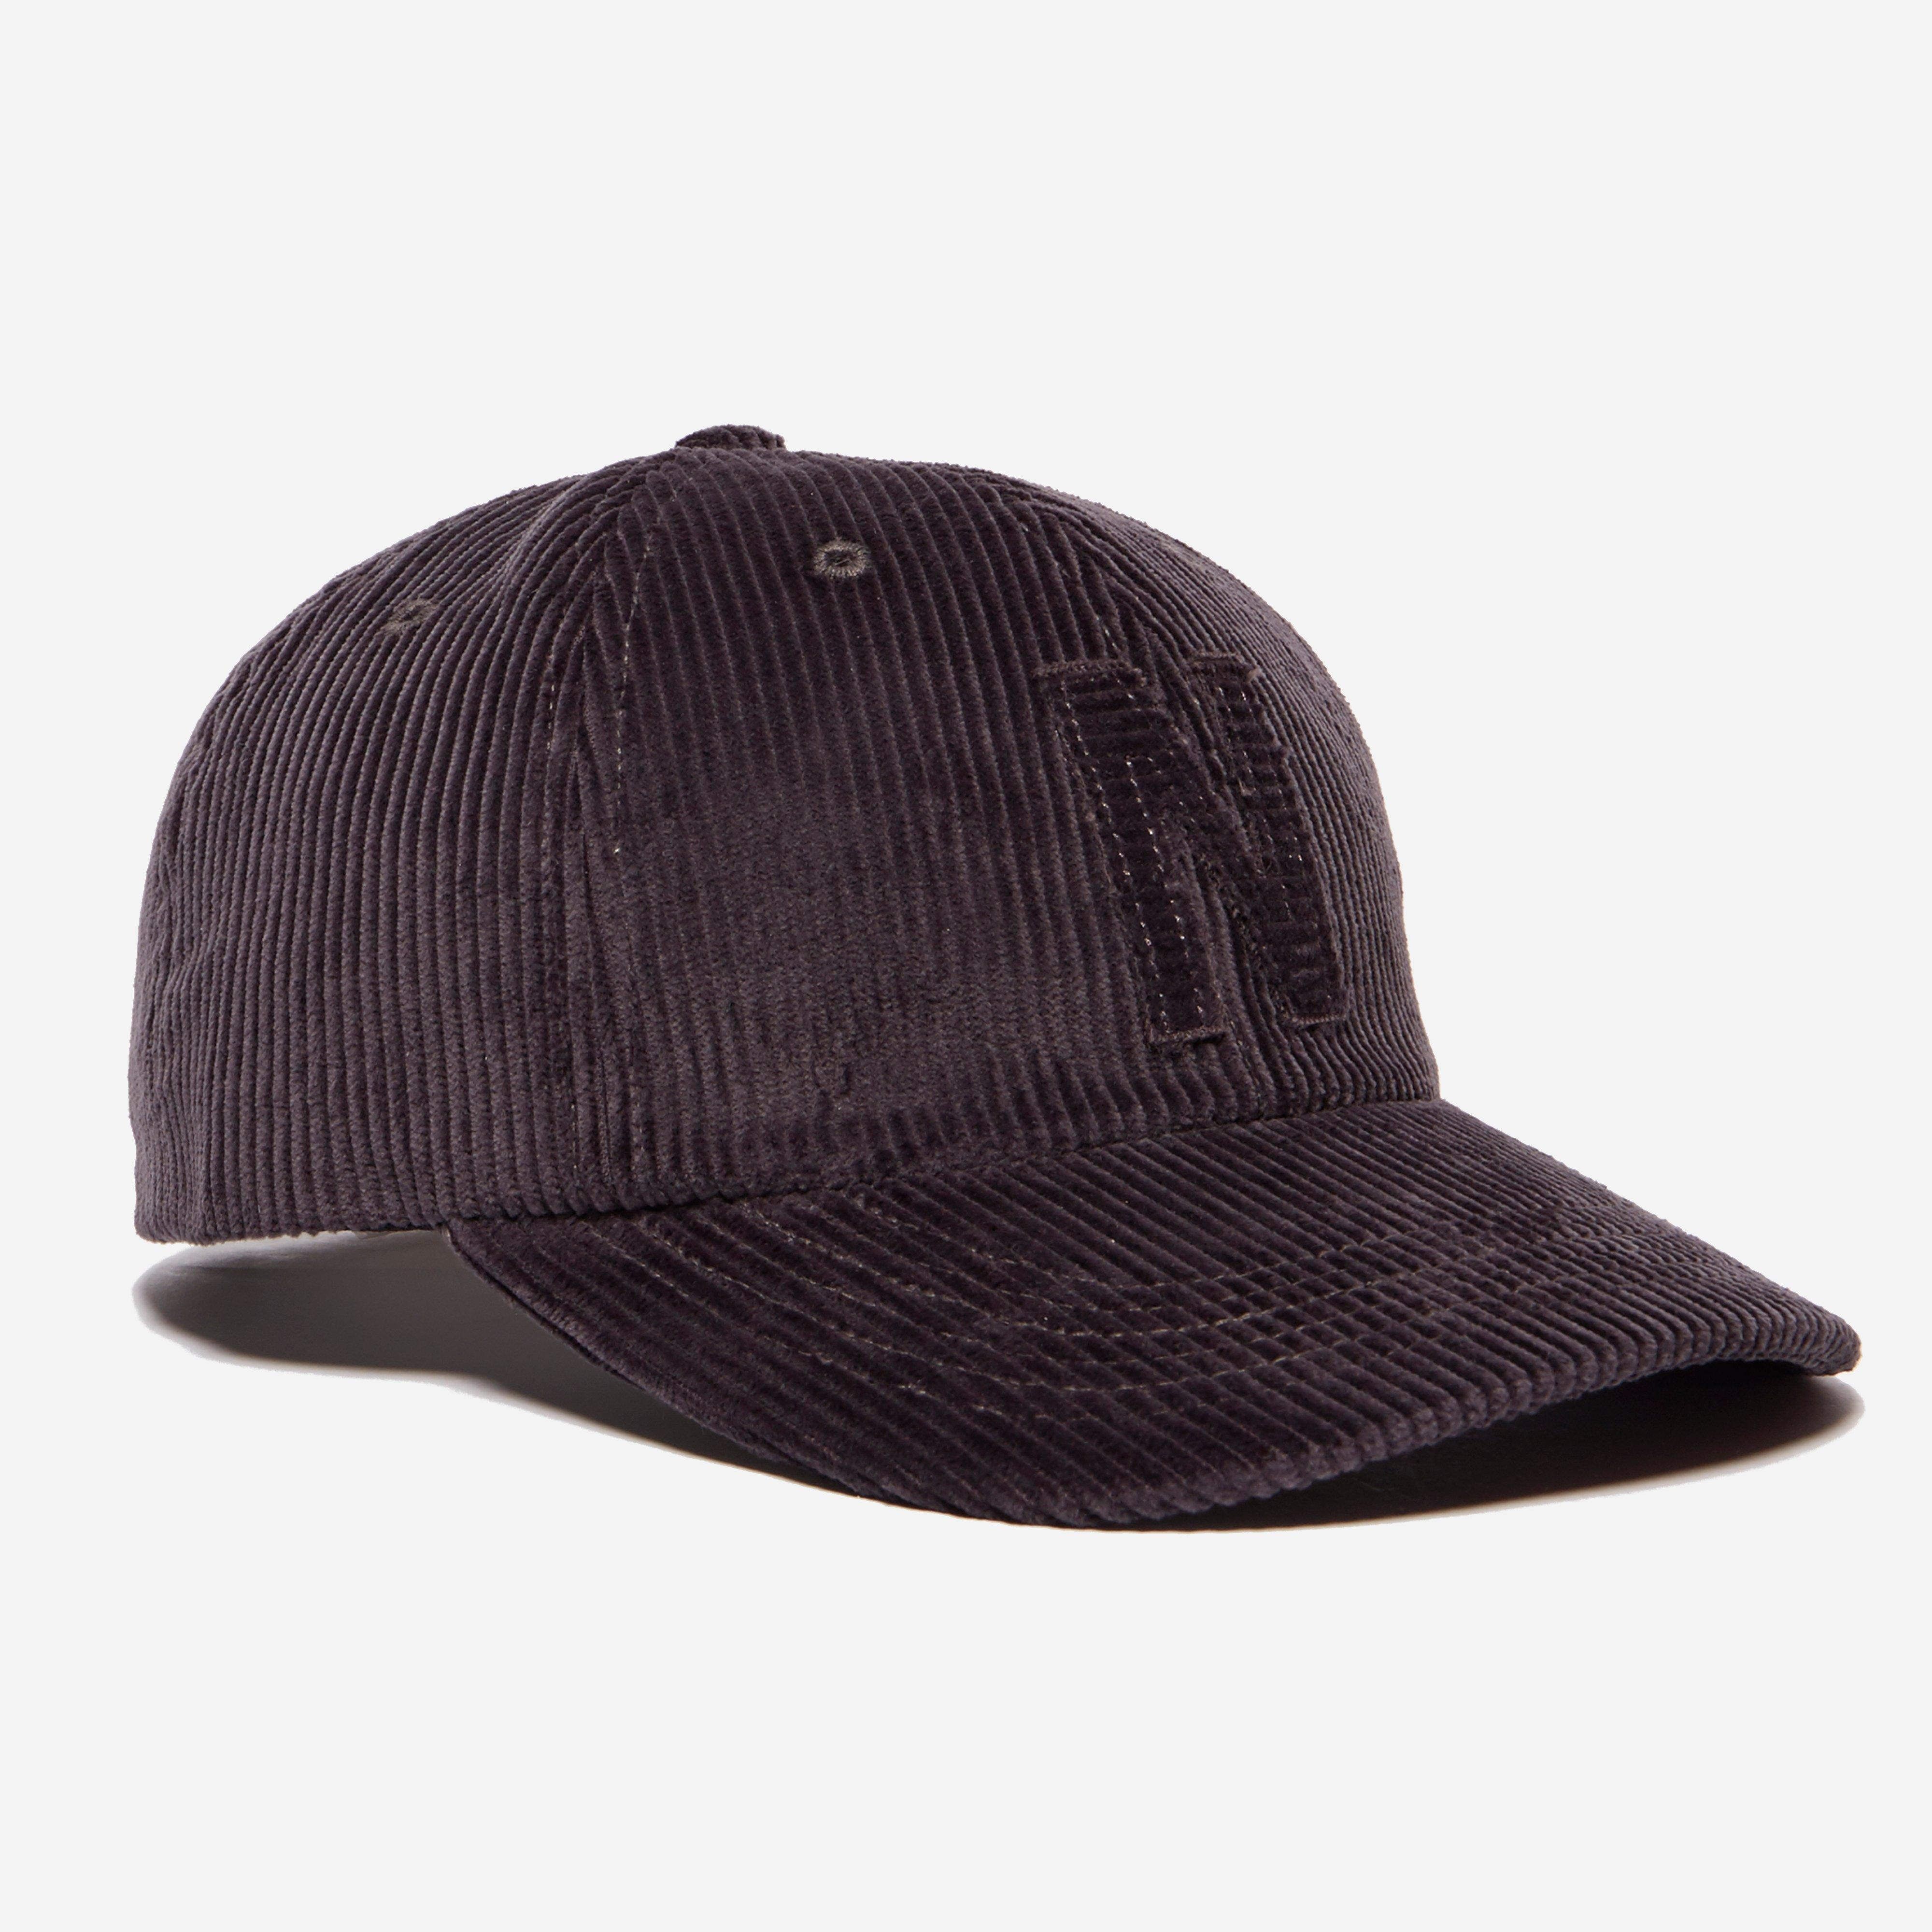 Norse Projects 6 Panel Corduroy Cap